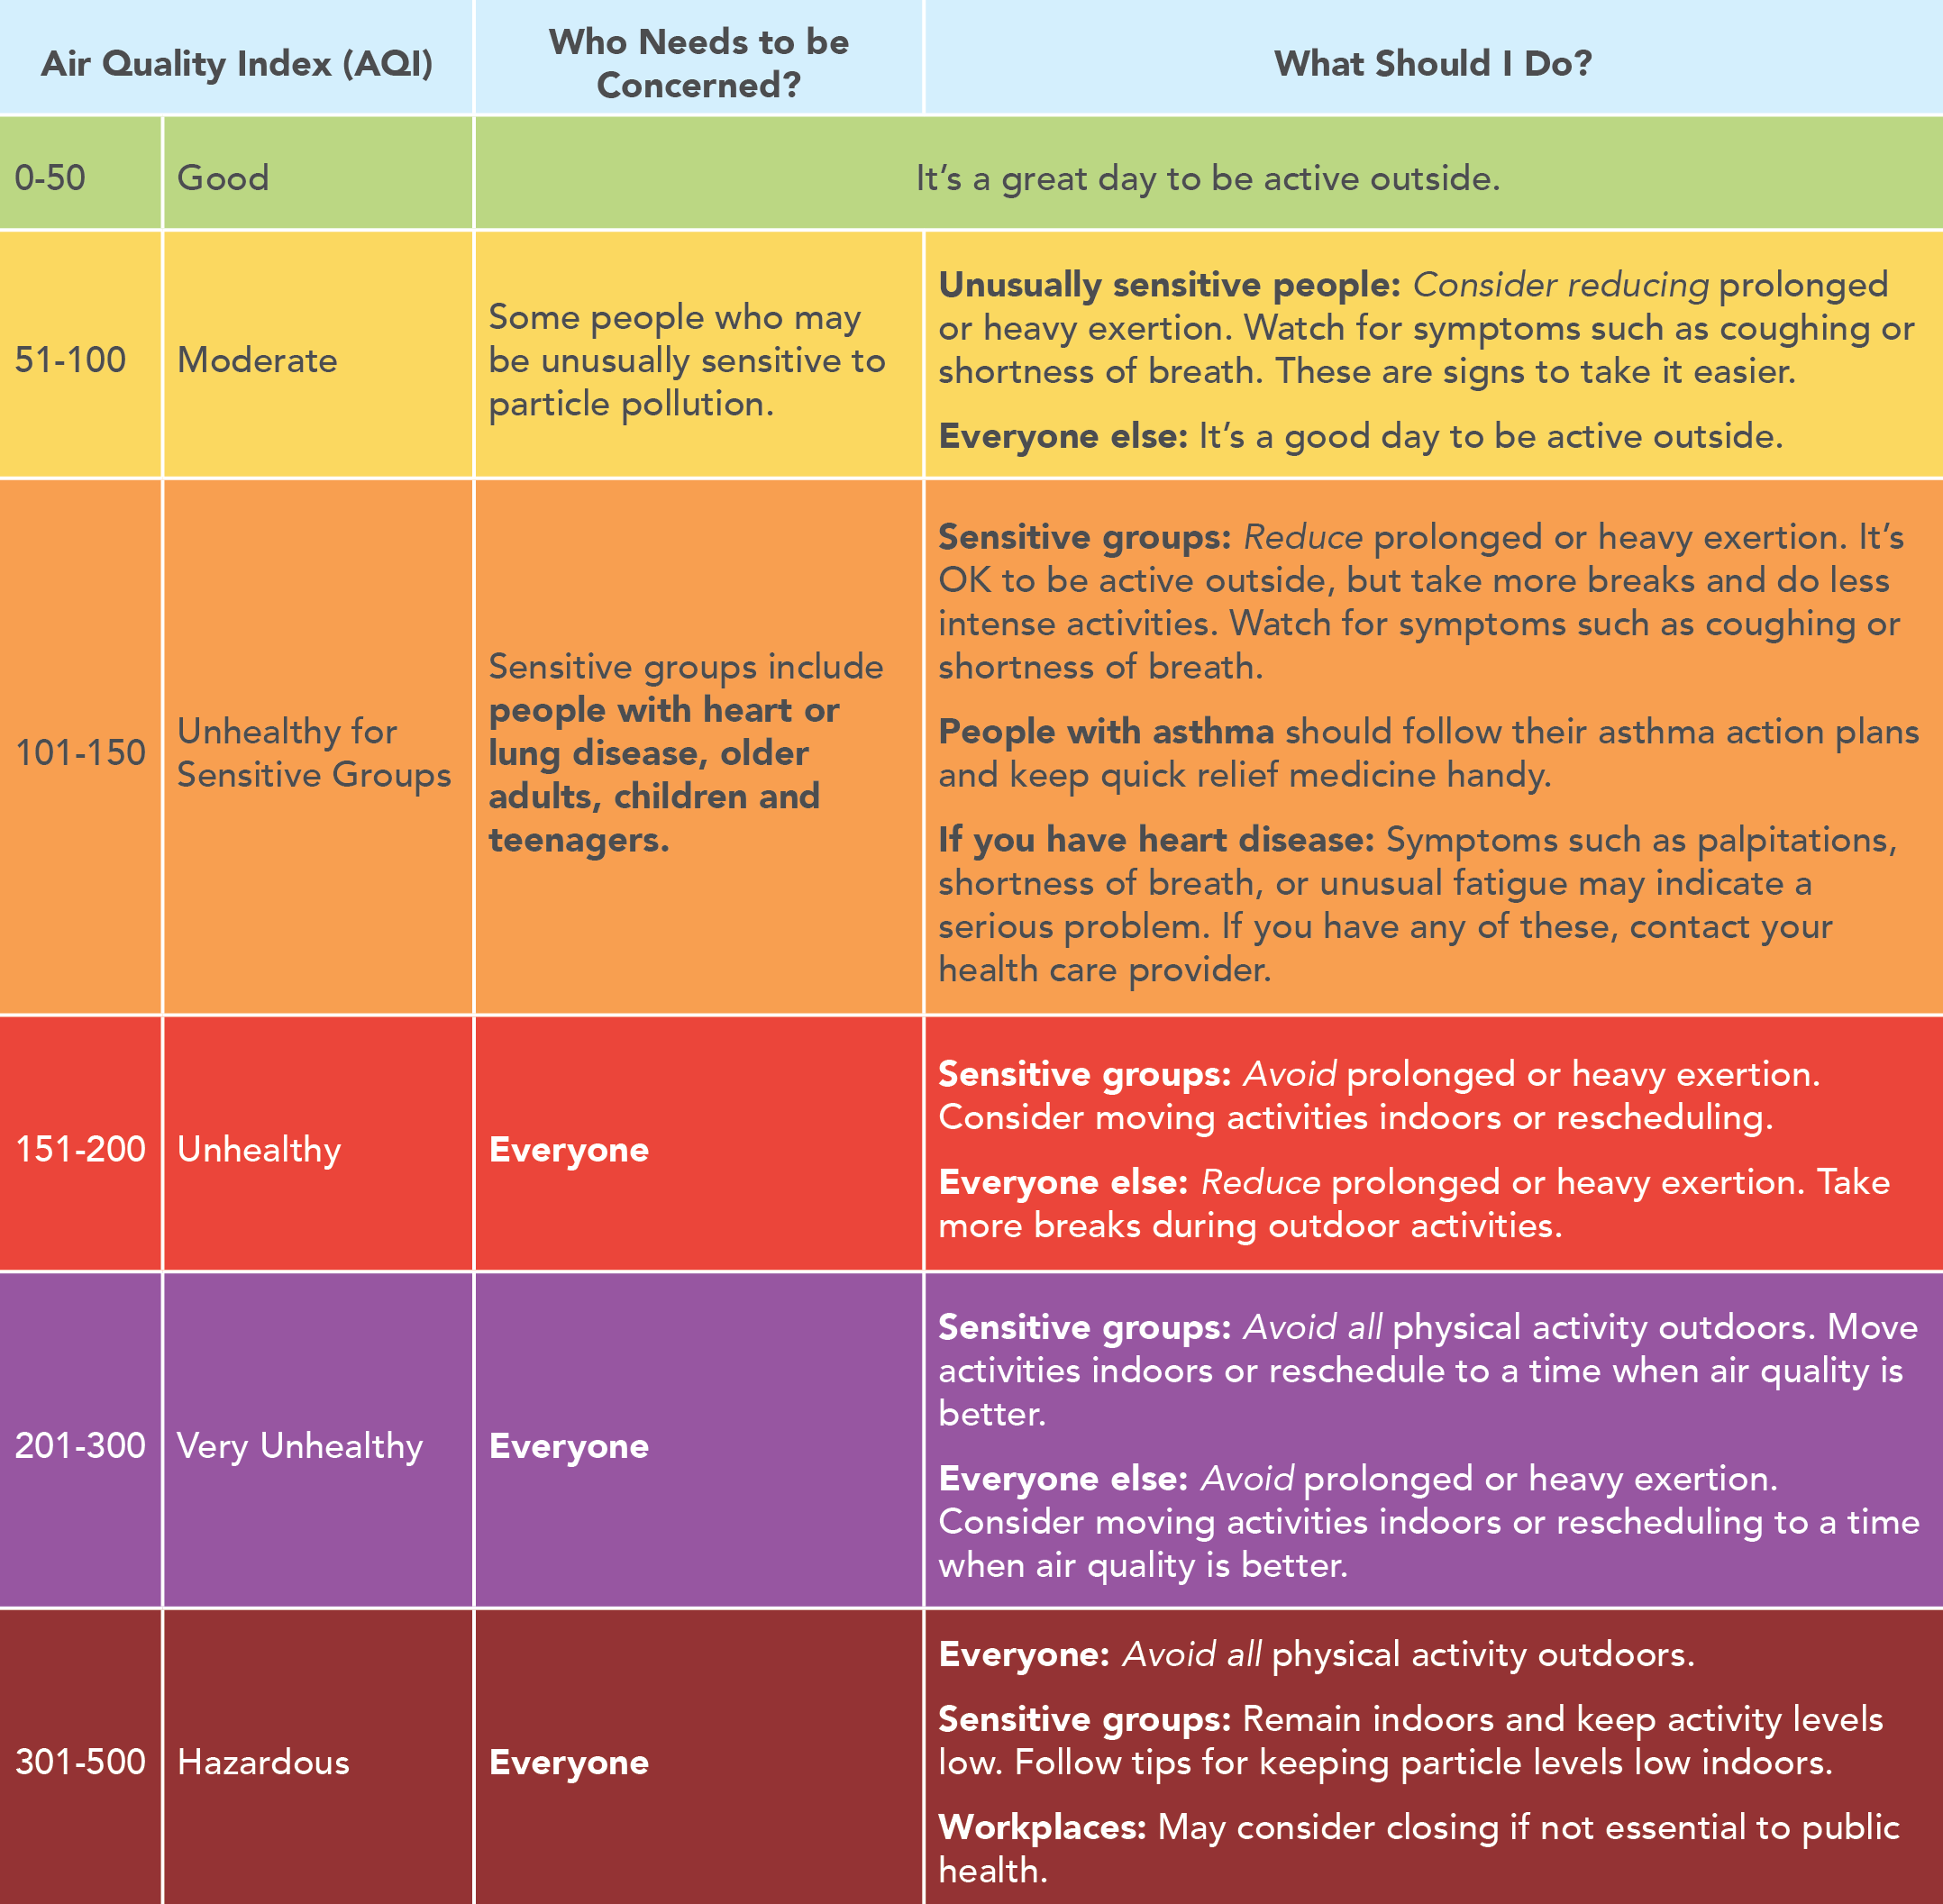 Air Quality Guide for Particle Pollution